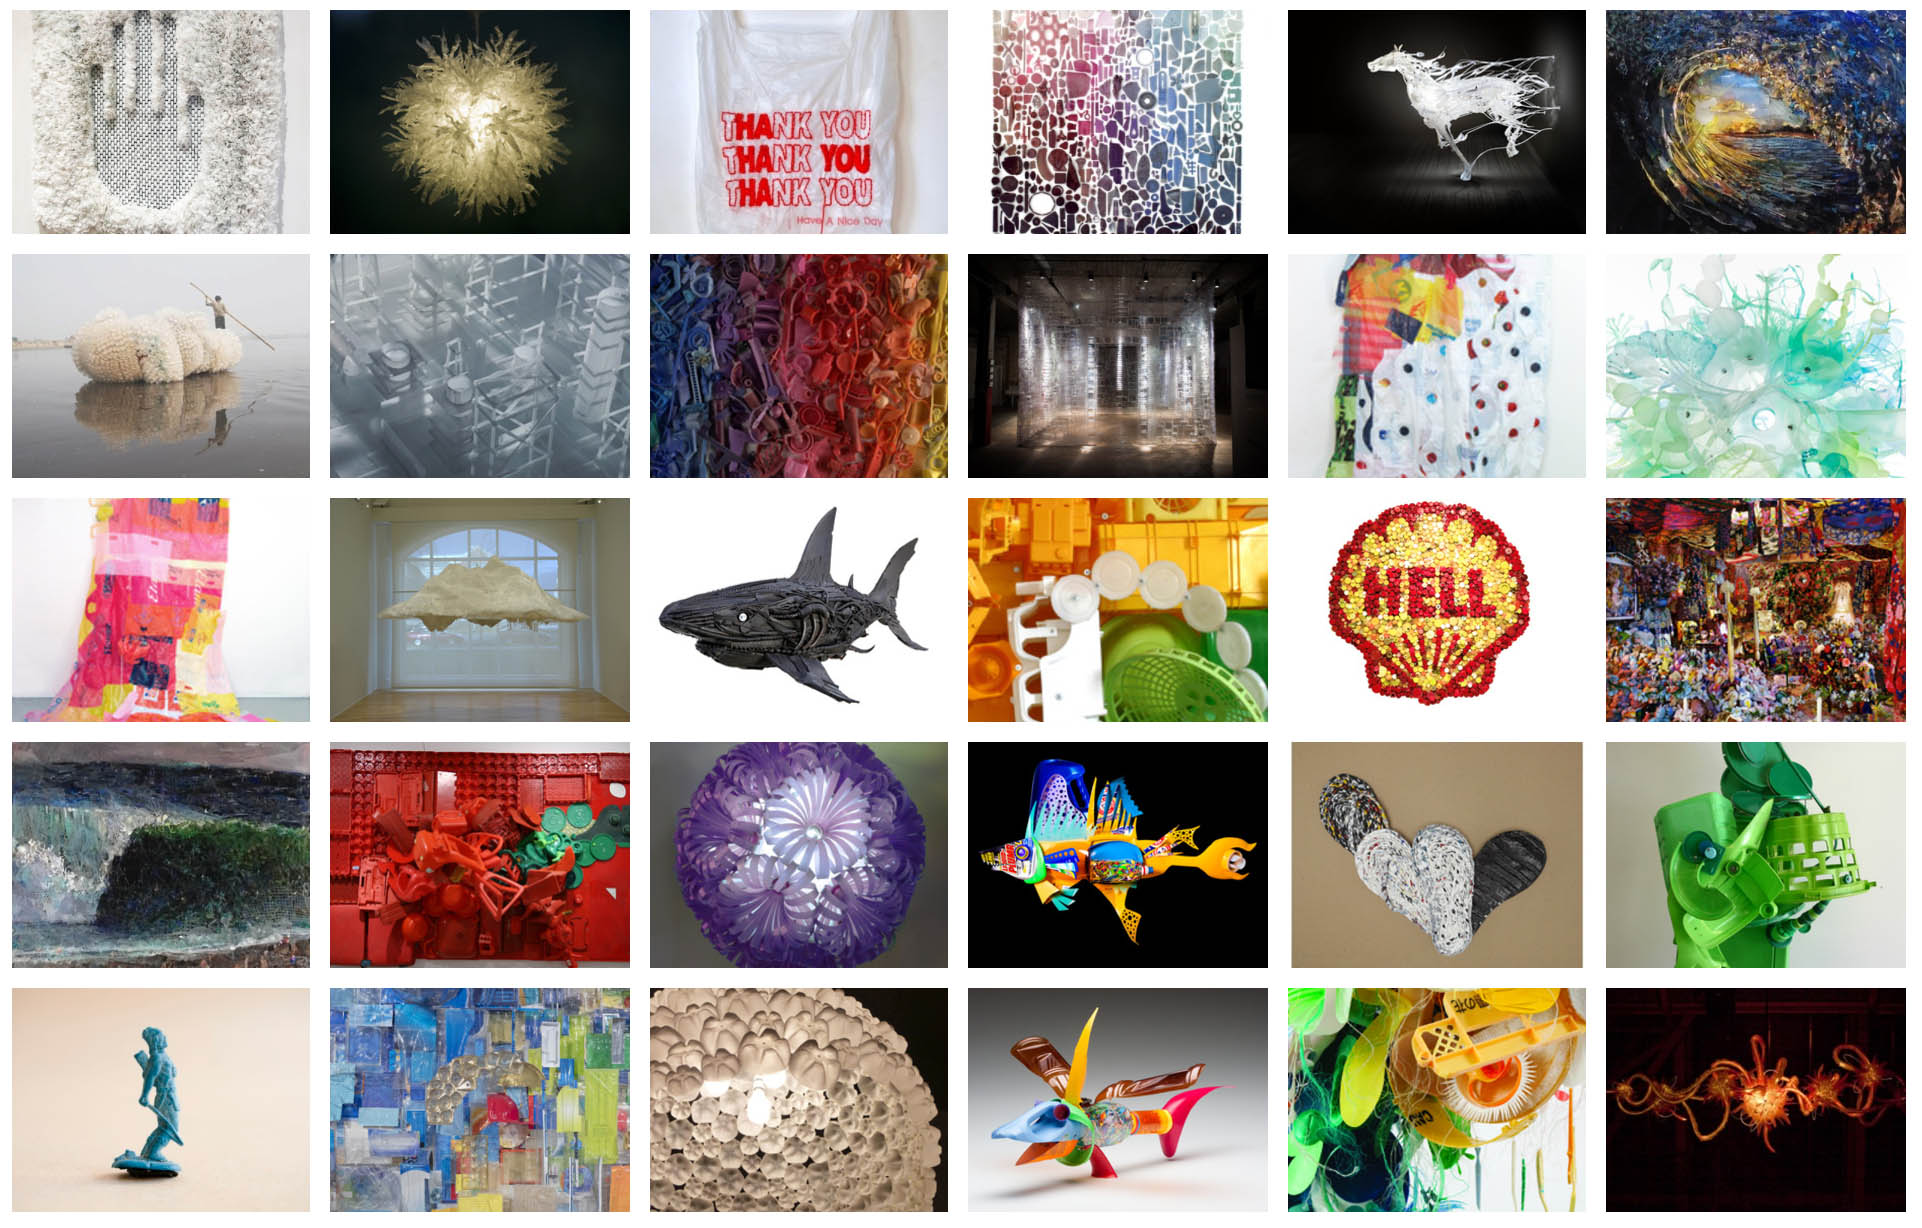 The spectrum of work, all created and focussed on plastic debris, generated by the collective of artists and designers in Project Vortex.